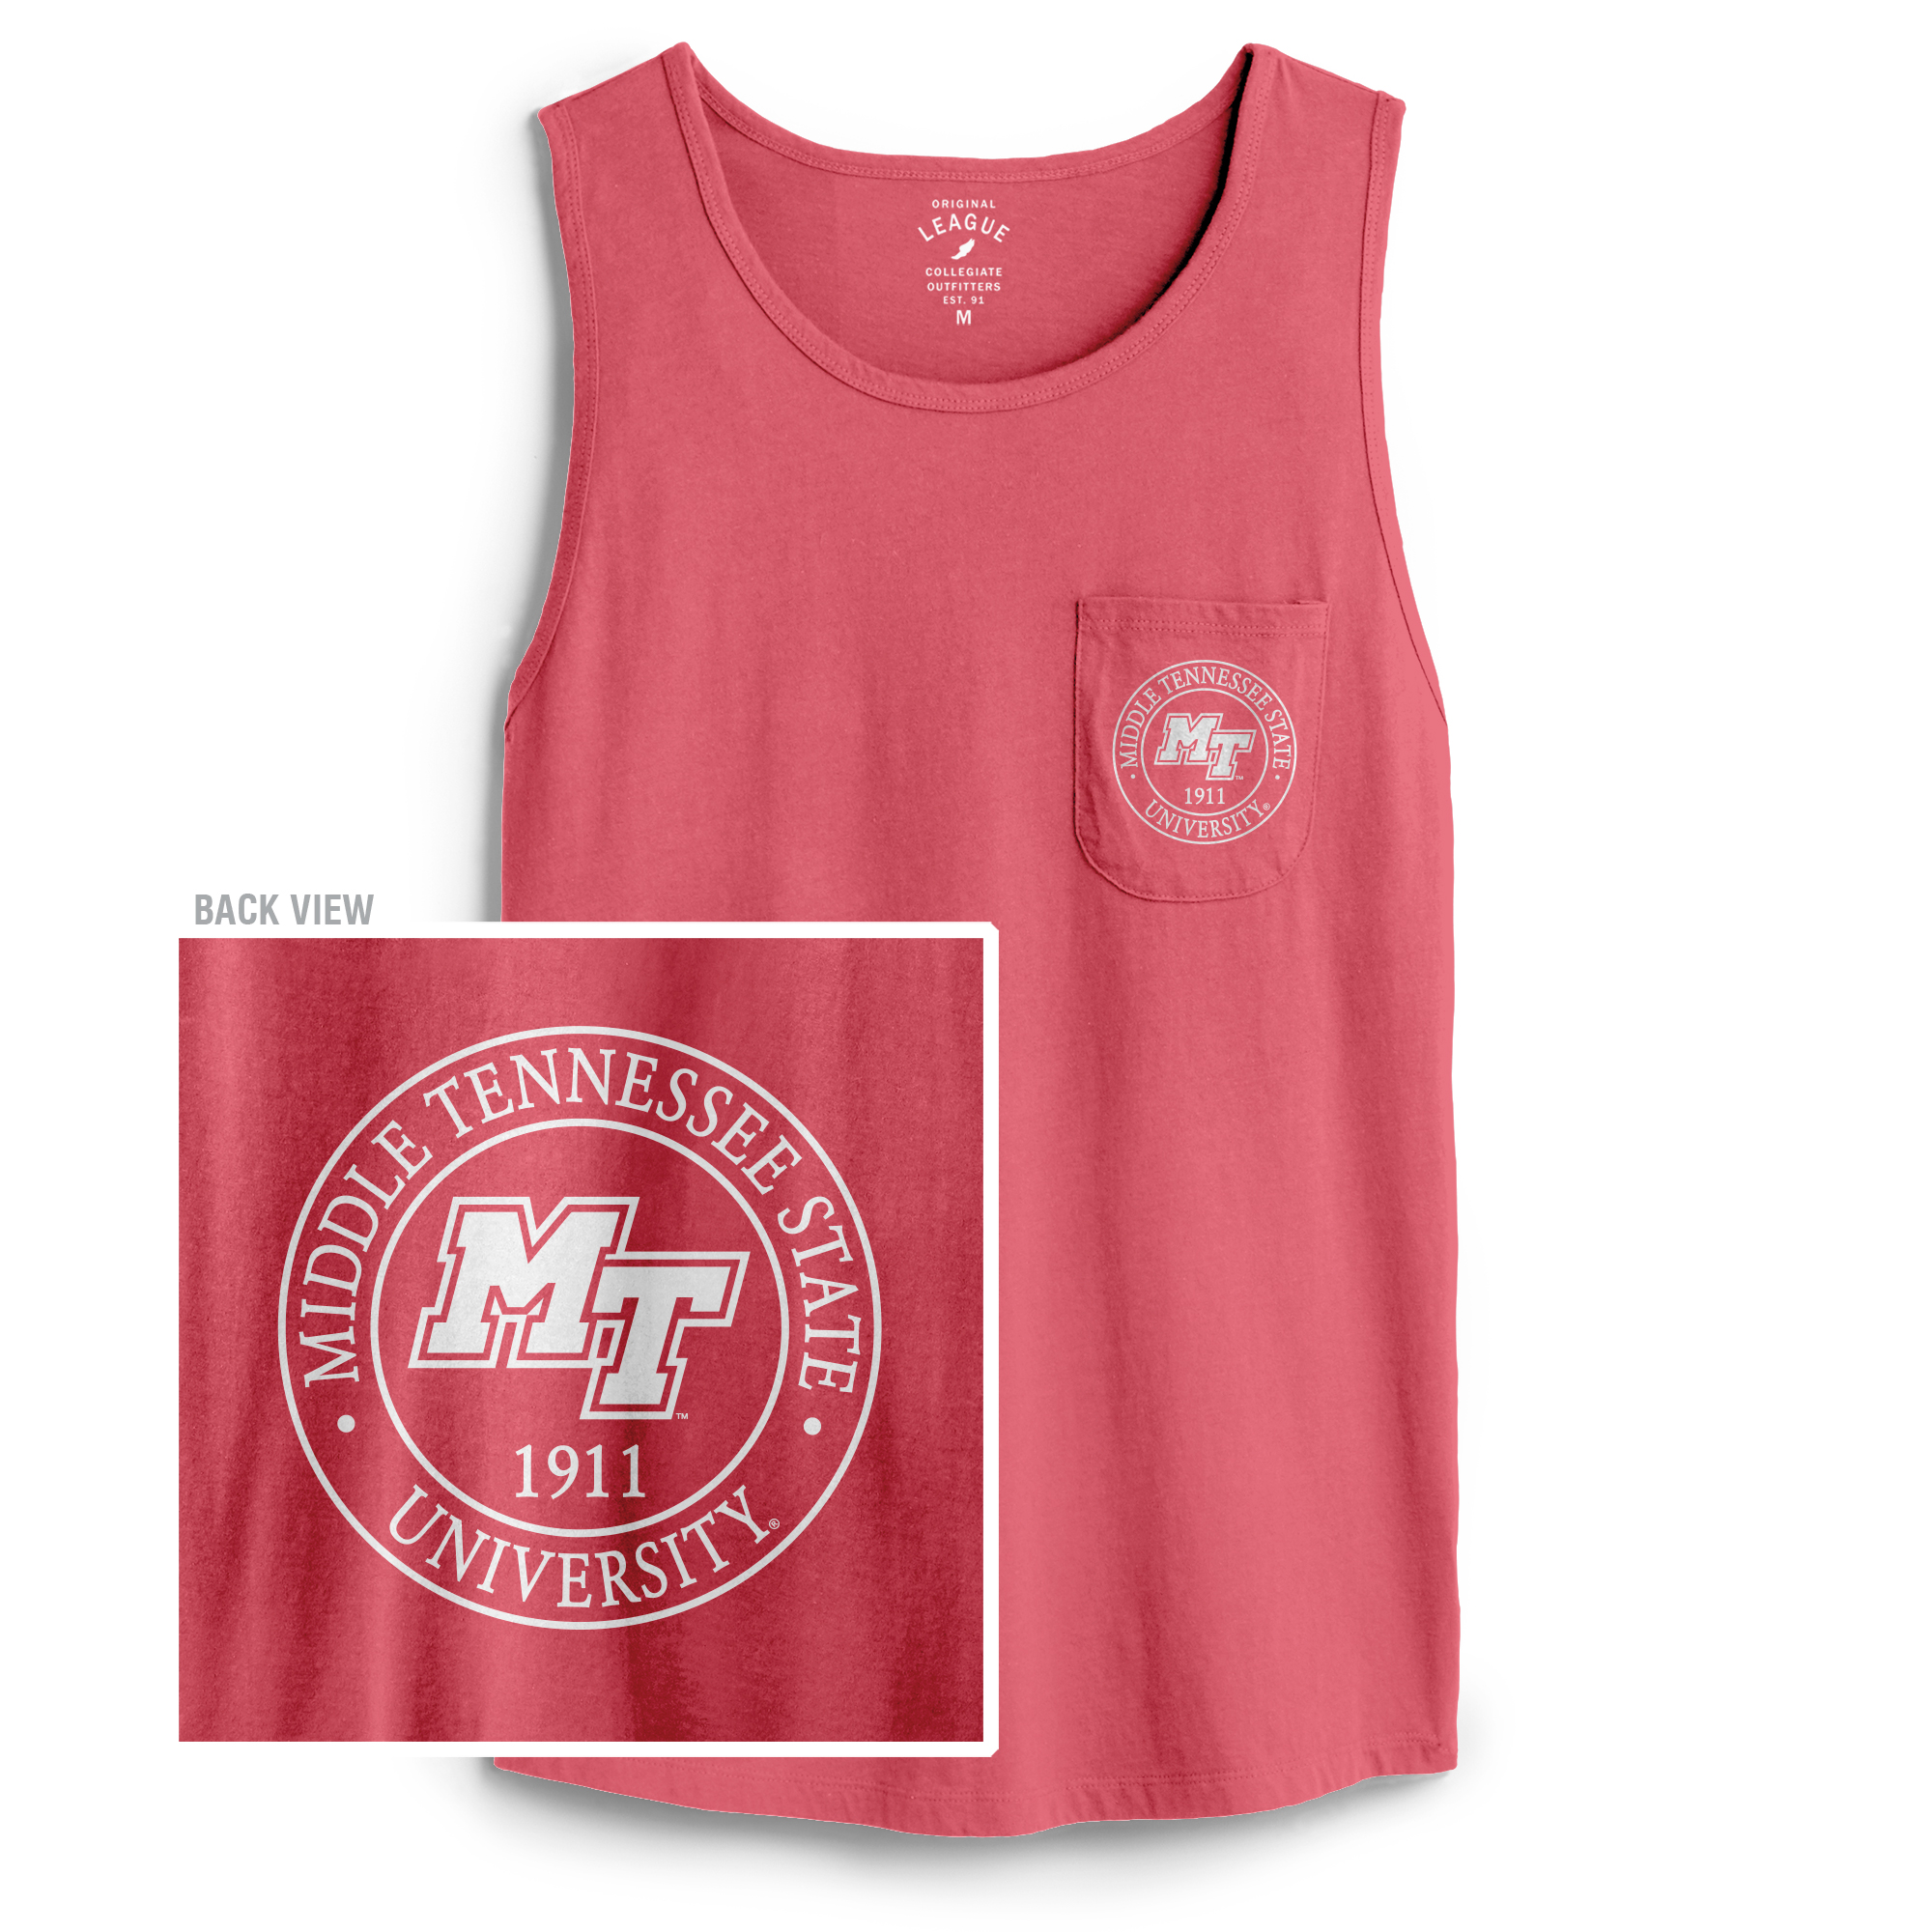 Middle Tennessee Est. 1911 Women's Campus Pocket Tank